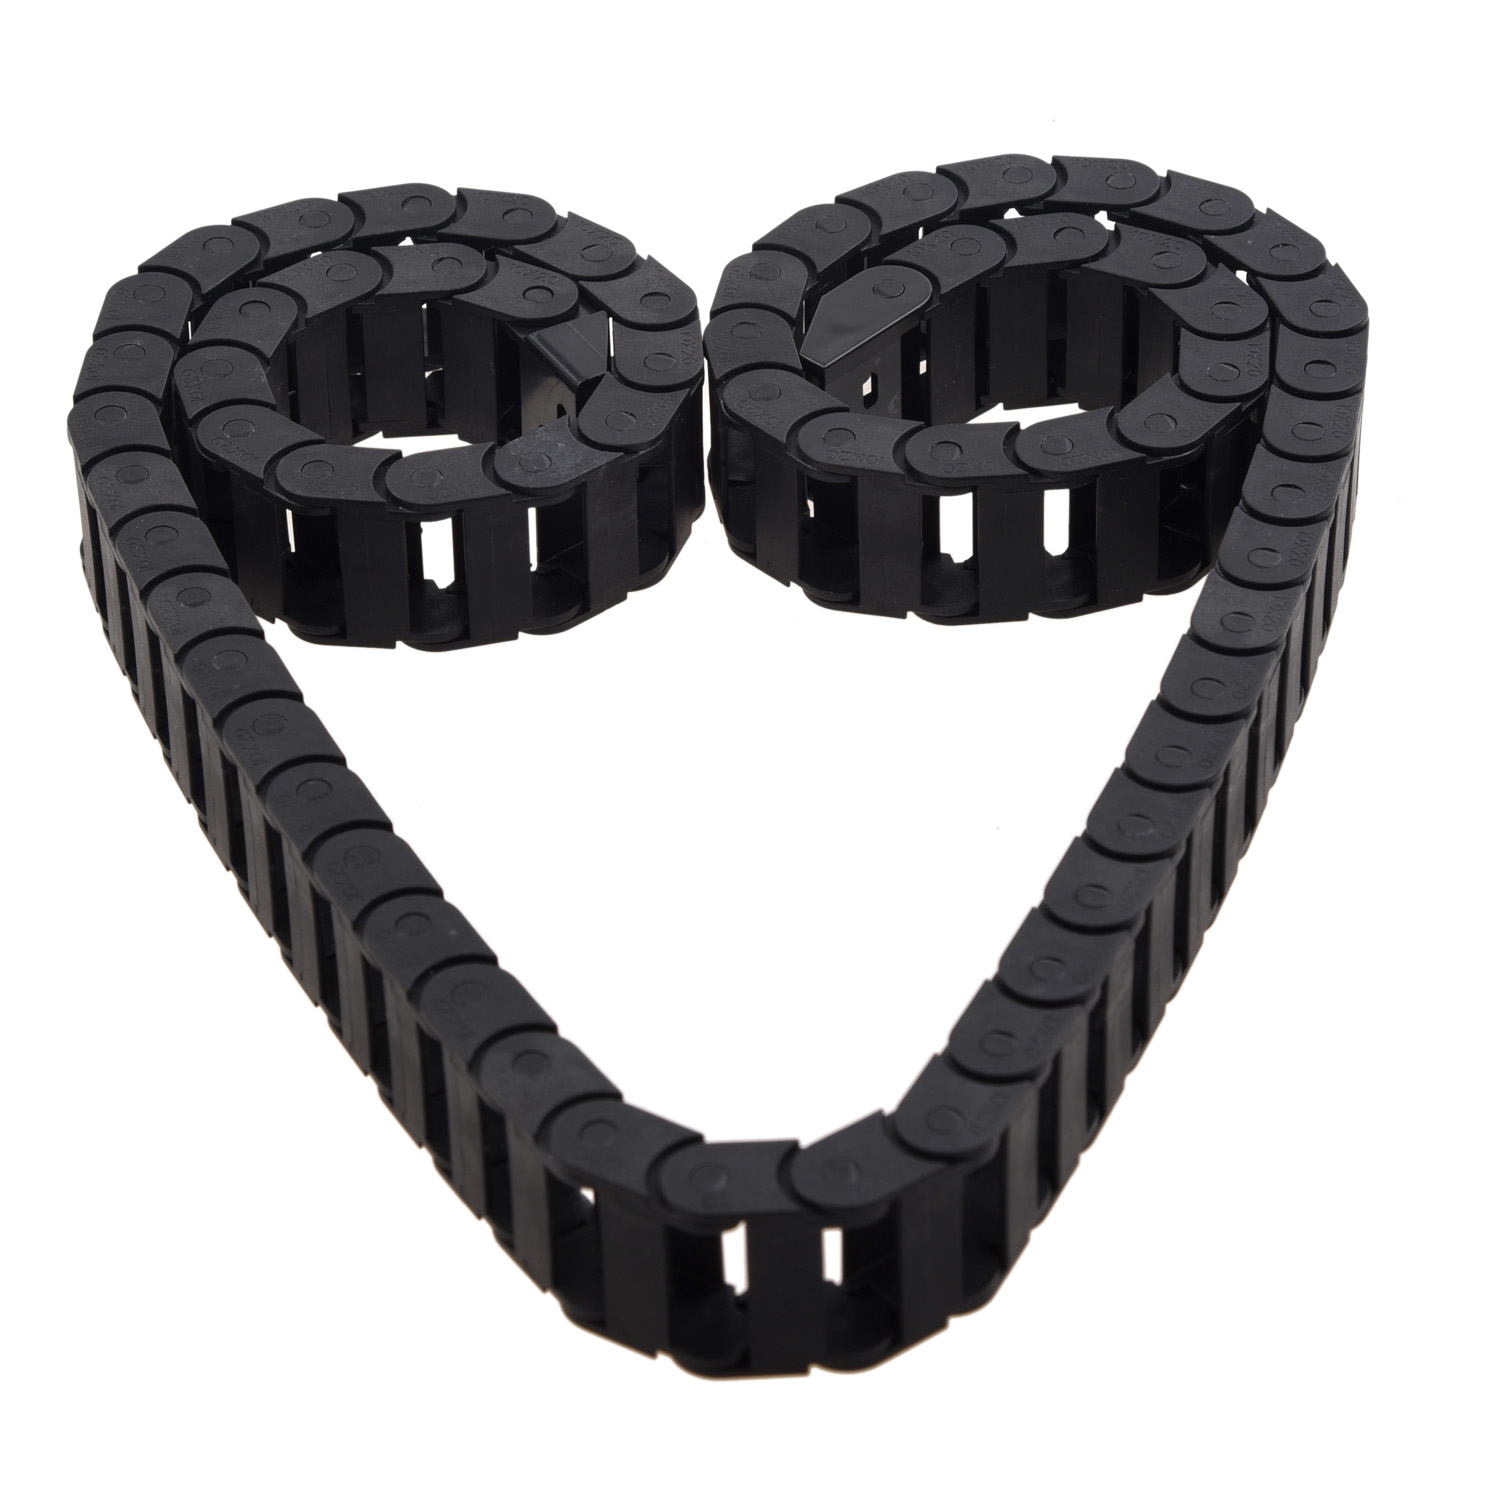 10 x 20mm 1M Open On Both Side Plastic Towline Cable Drag Chain10 x 20mm 1M Open On Both Side Plastic Towline Cable Drag Chain